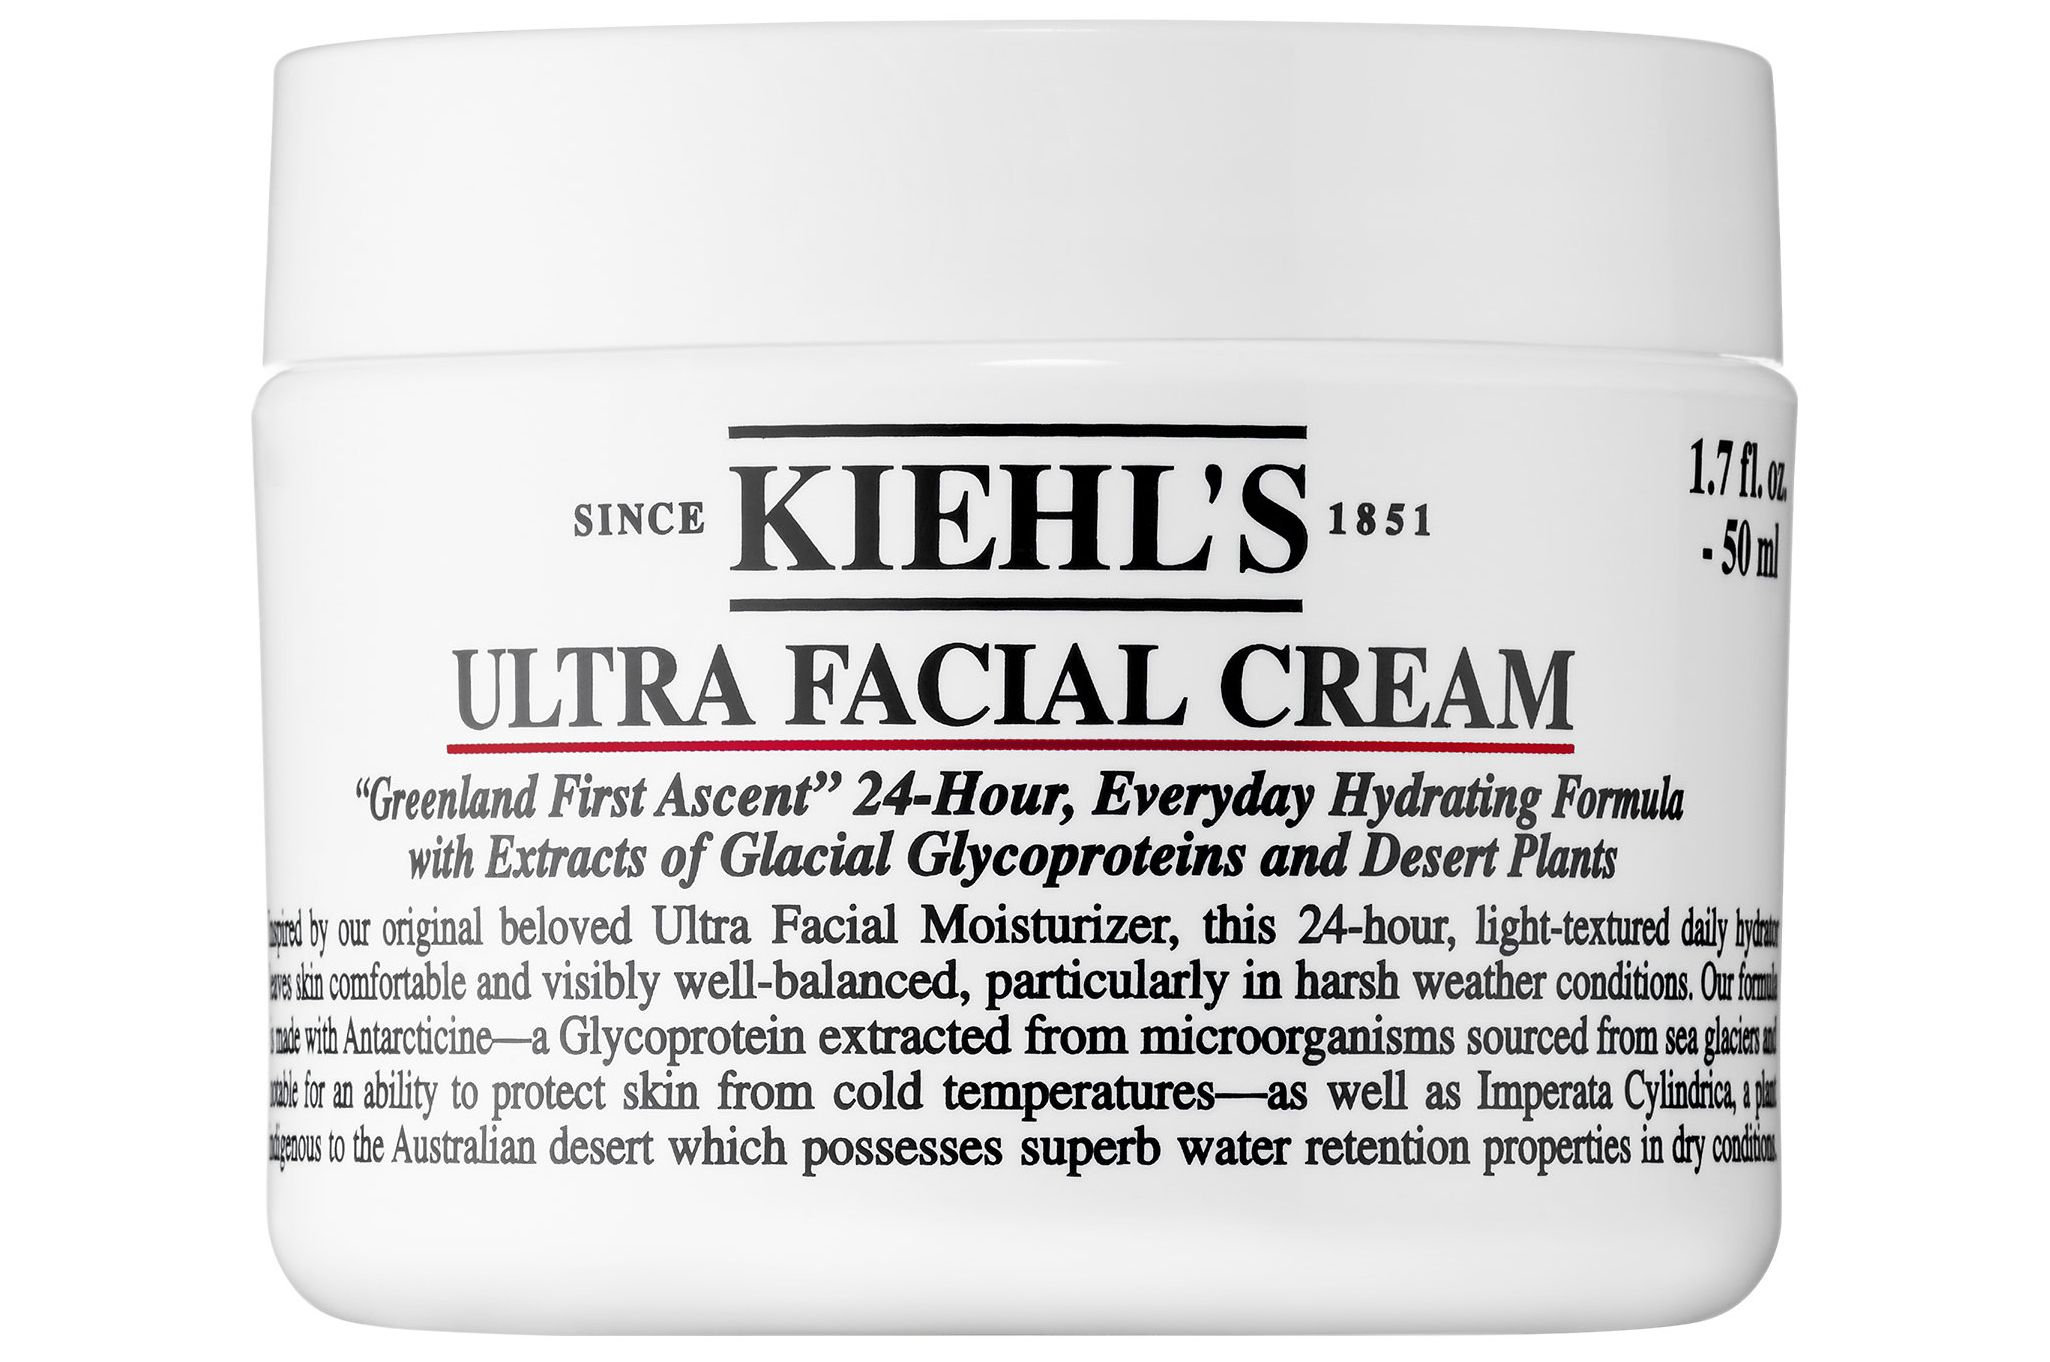 9 best-selling skincare products at Sephora